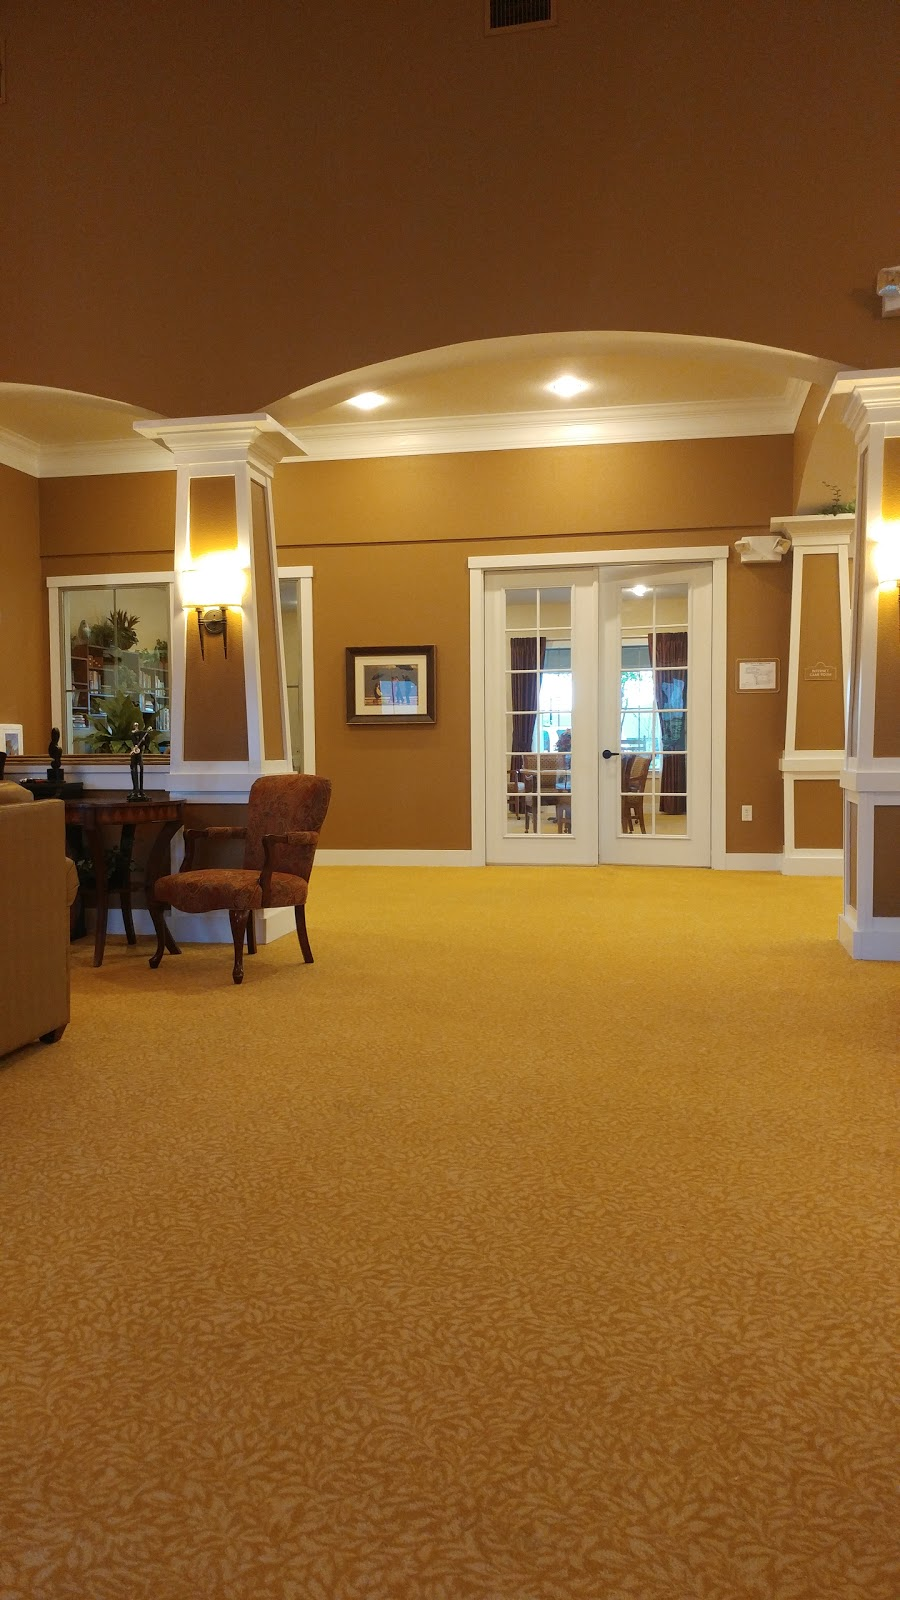 River Oaks Assisted Living - health  | Photo 3 of 4 | Address: 1530 E Sandy Lake Rd, Coppell, TX 75019, USA | Phone: (469) 240-1624